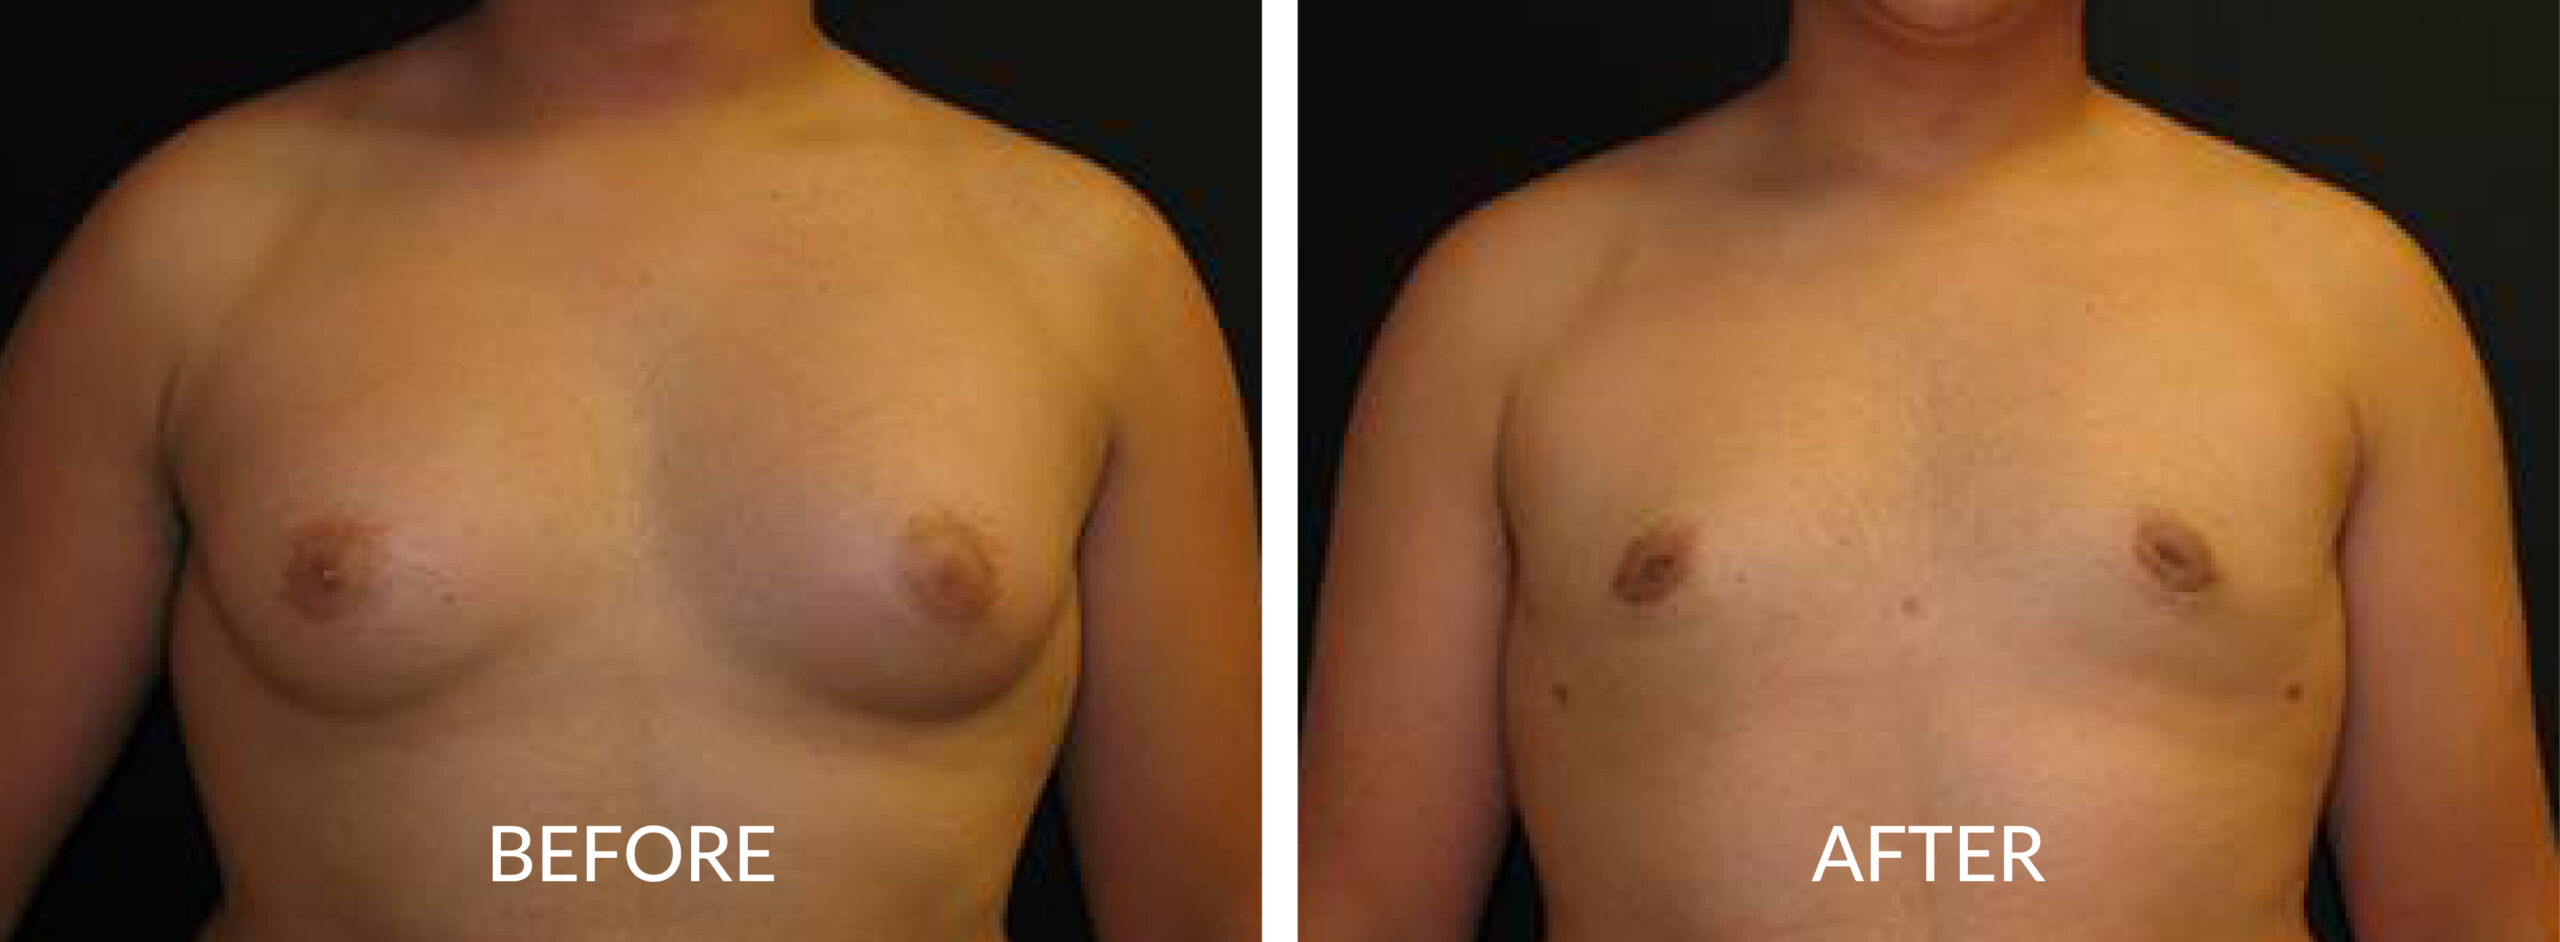 Before & After Gynecomastia